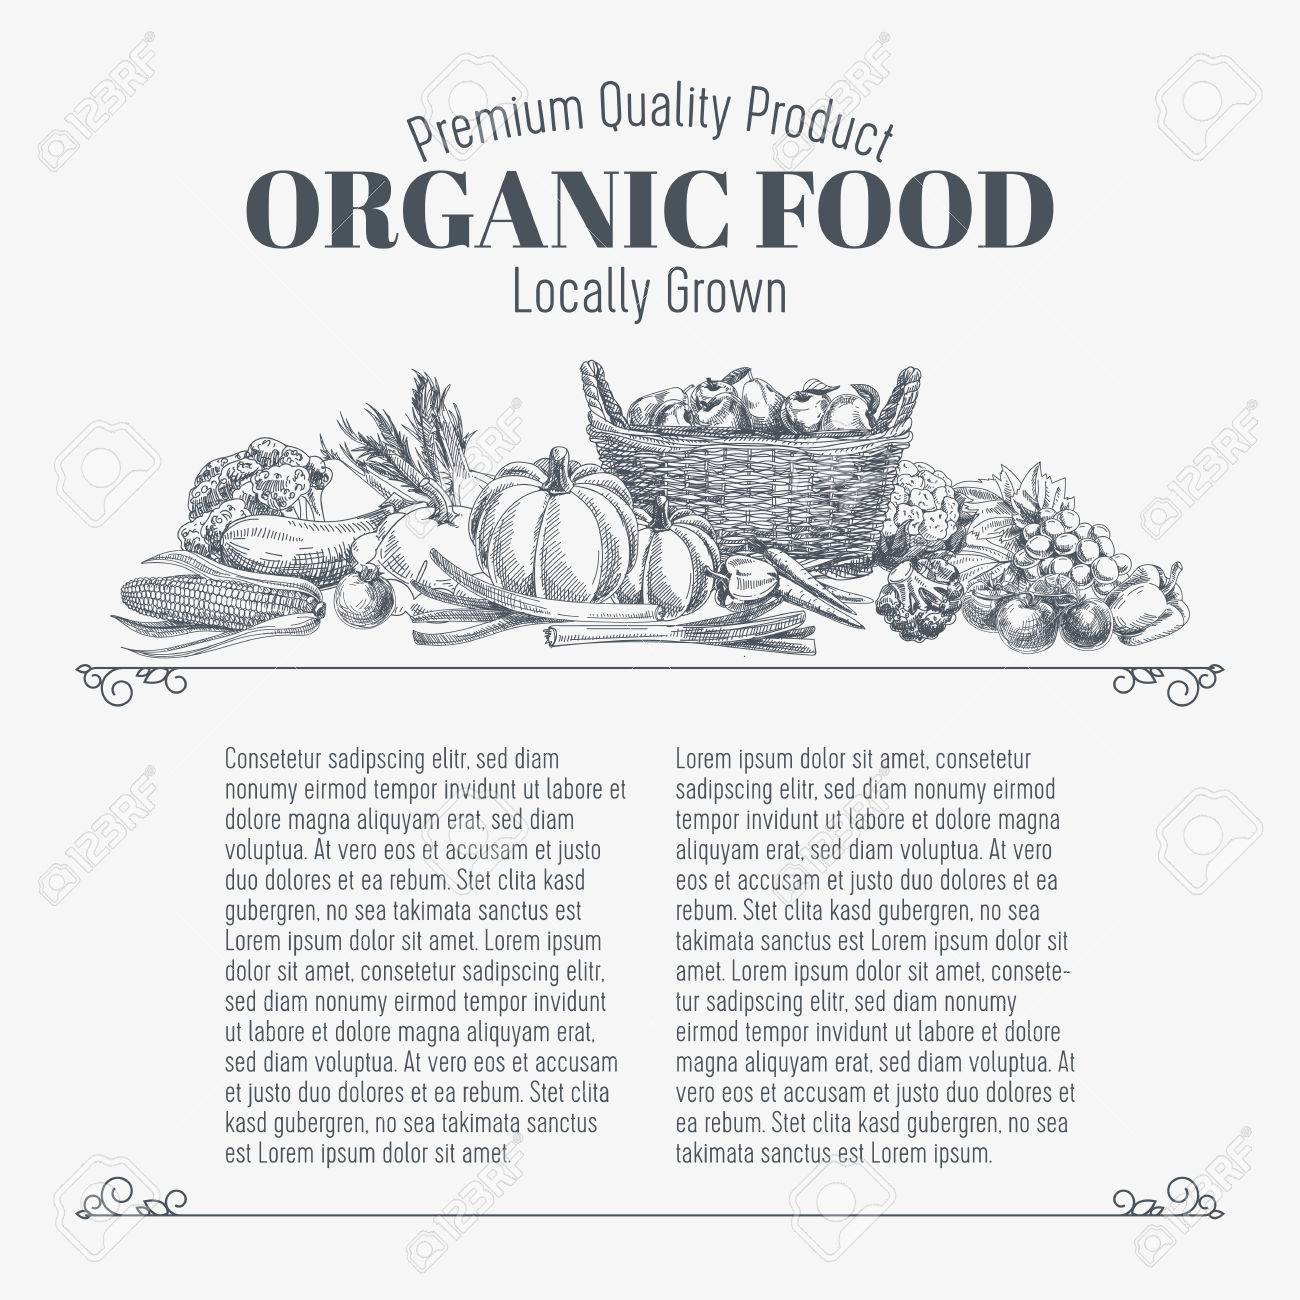 Vector background with hand drawn organic food. Vegetable and fruits spices illustration. - 49425286